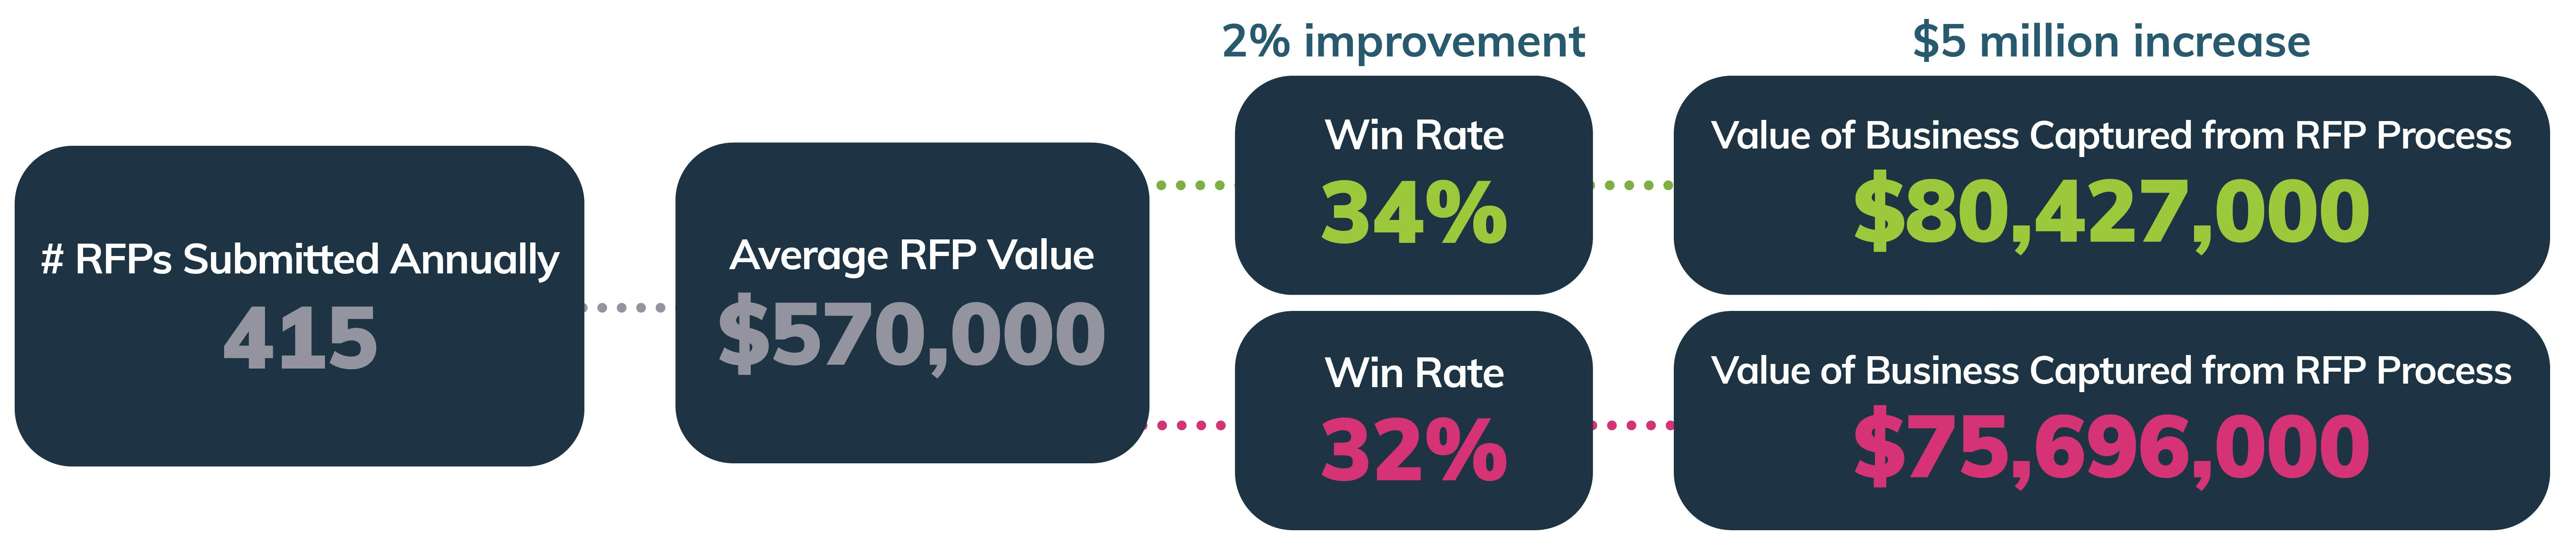 ROI of increasing your RFP win rate